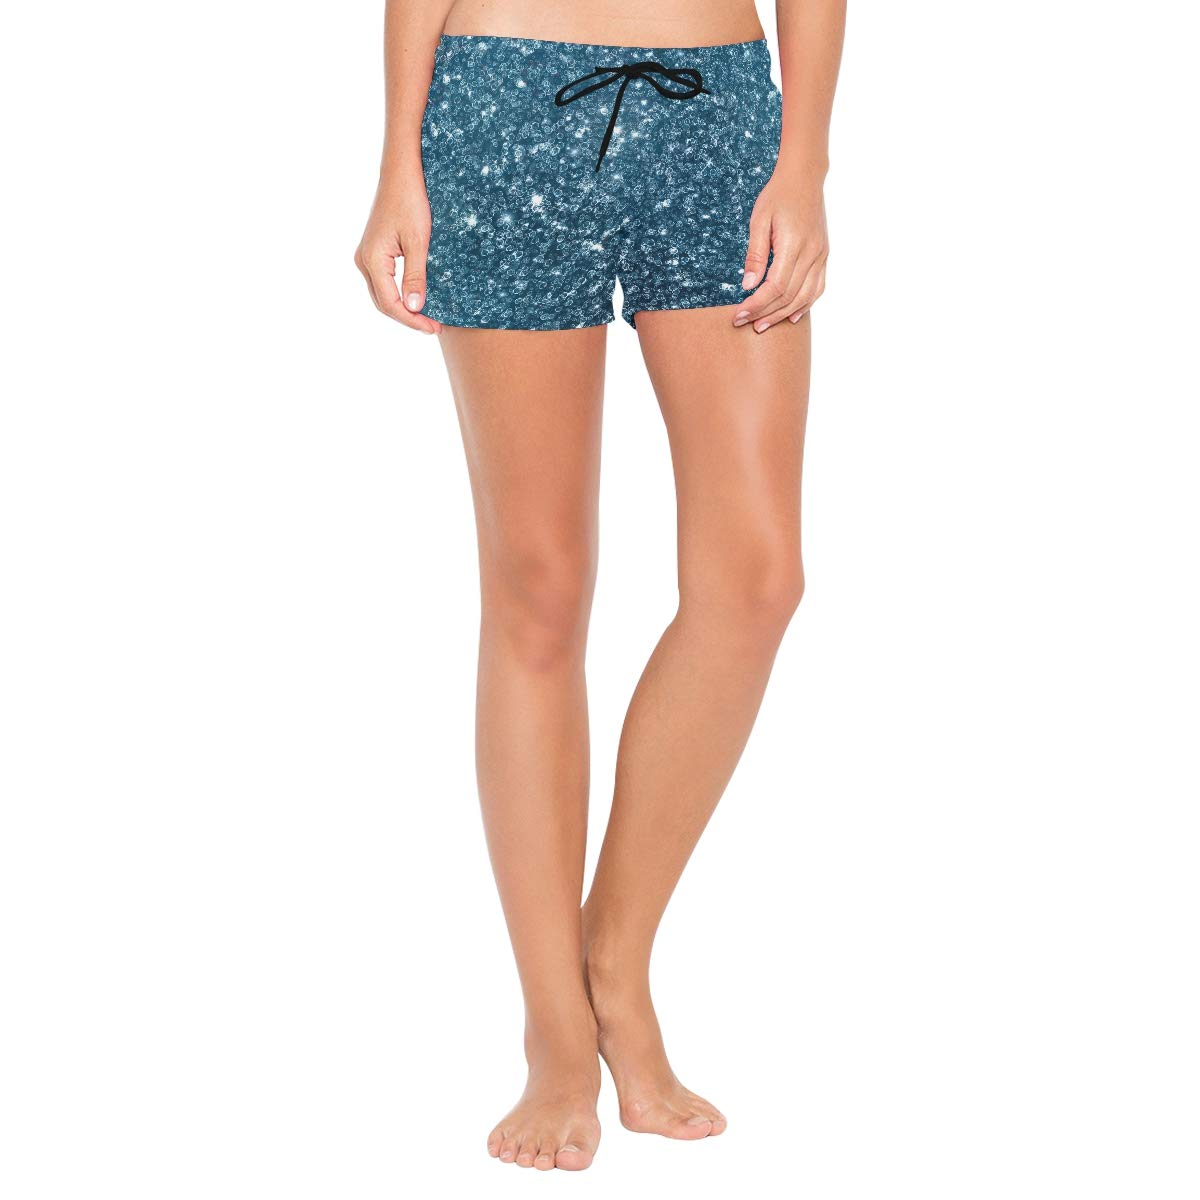 Blue Glitter Diamond Texture Womens Board Shorts with Pockets Quick Dry Drawstring Beach Swim Trunks S L